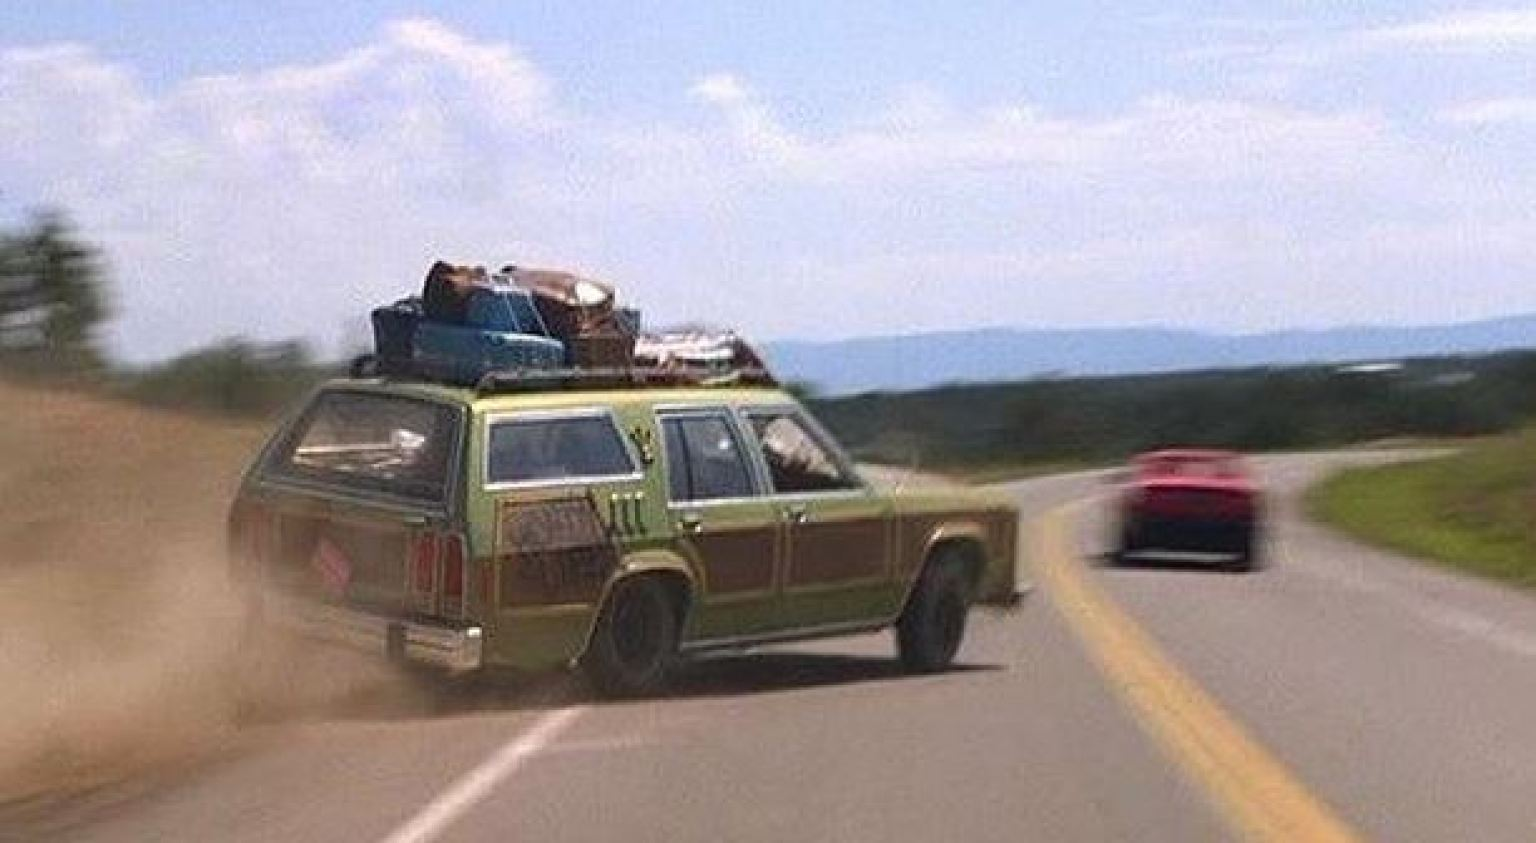 Top 10 Funny Road Trip Movie Moments